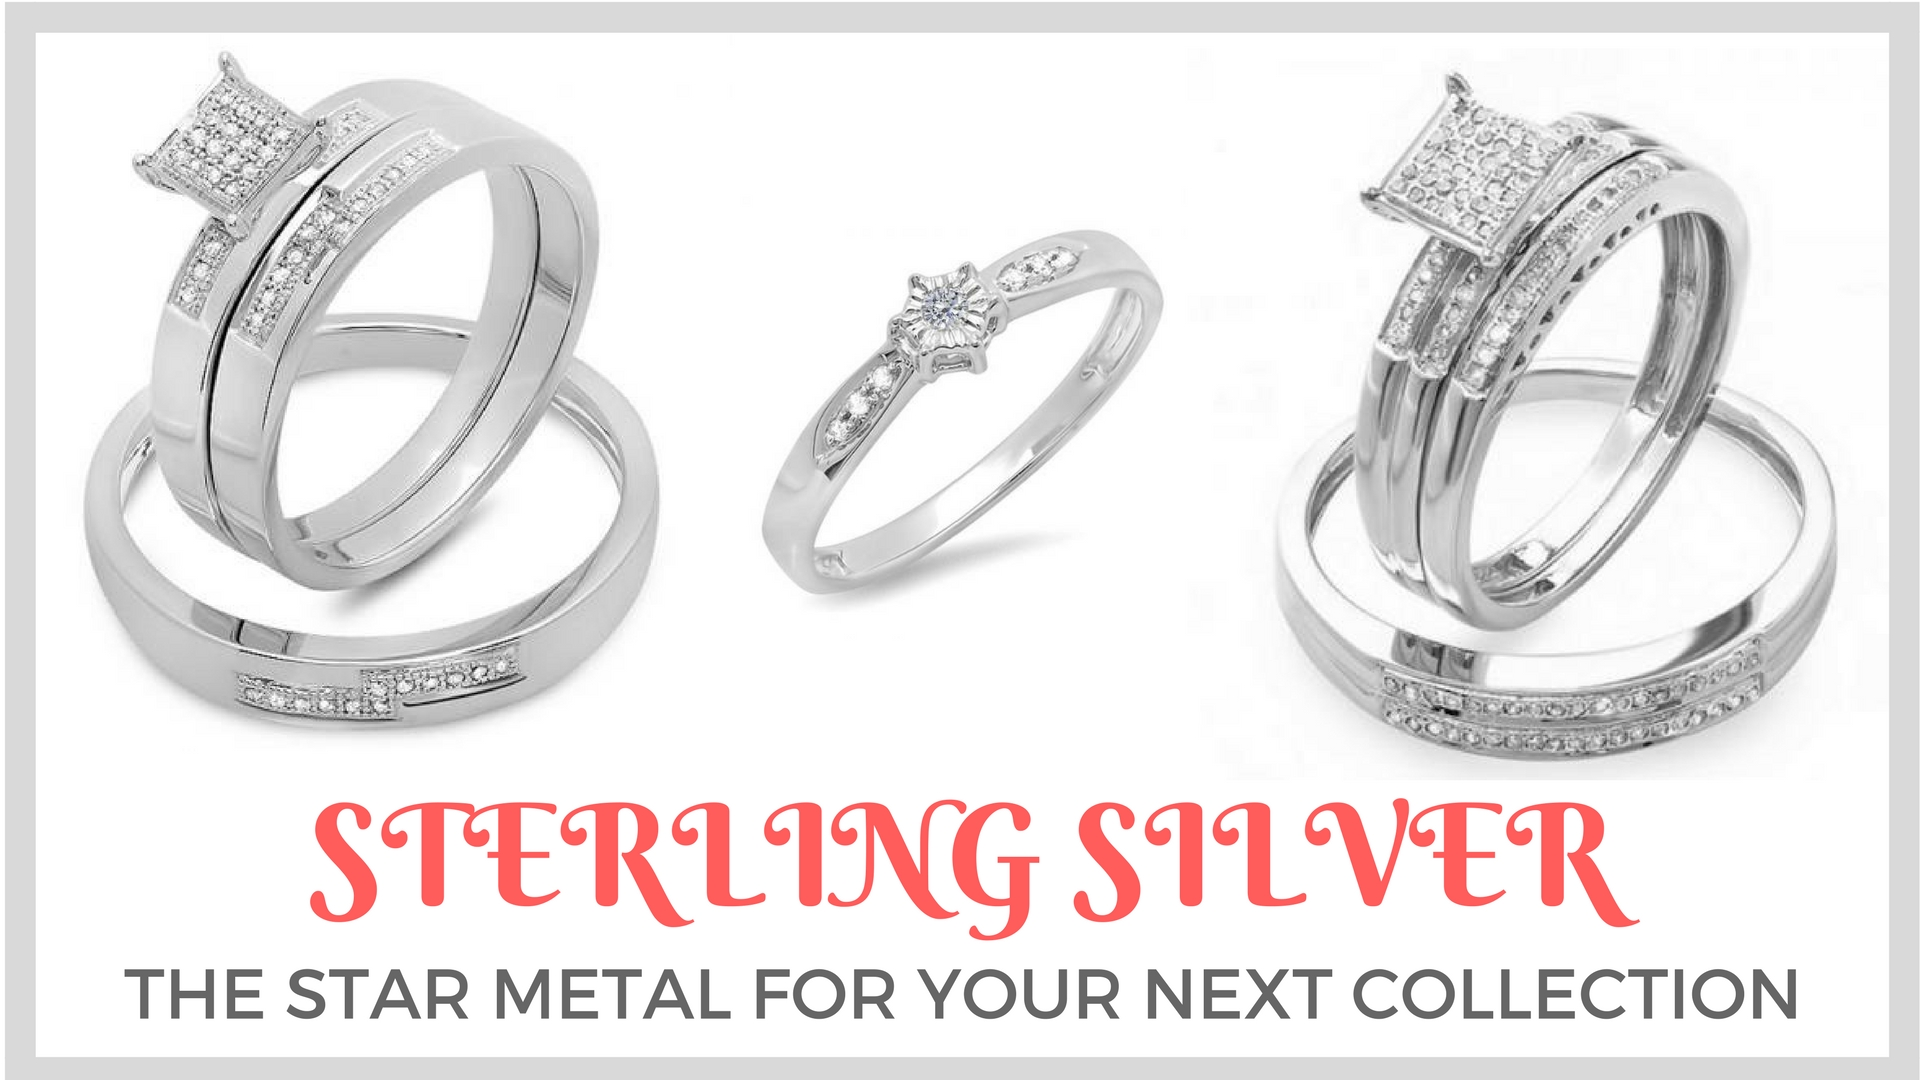 Sterling Silver - Choose the Star Metal For Your Next Collection